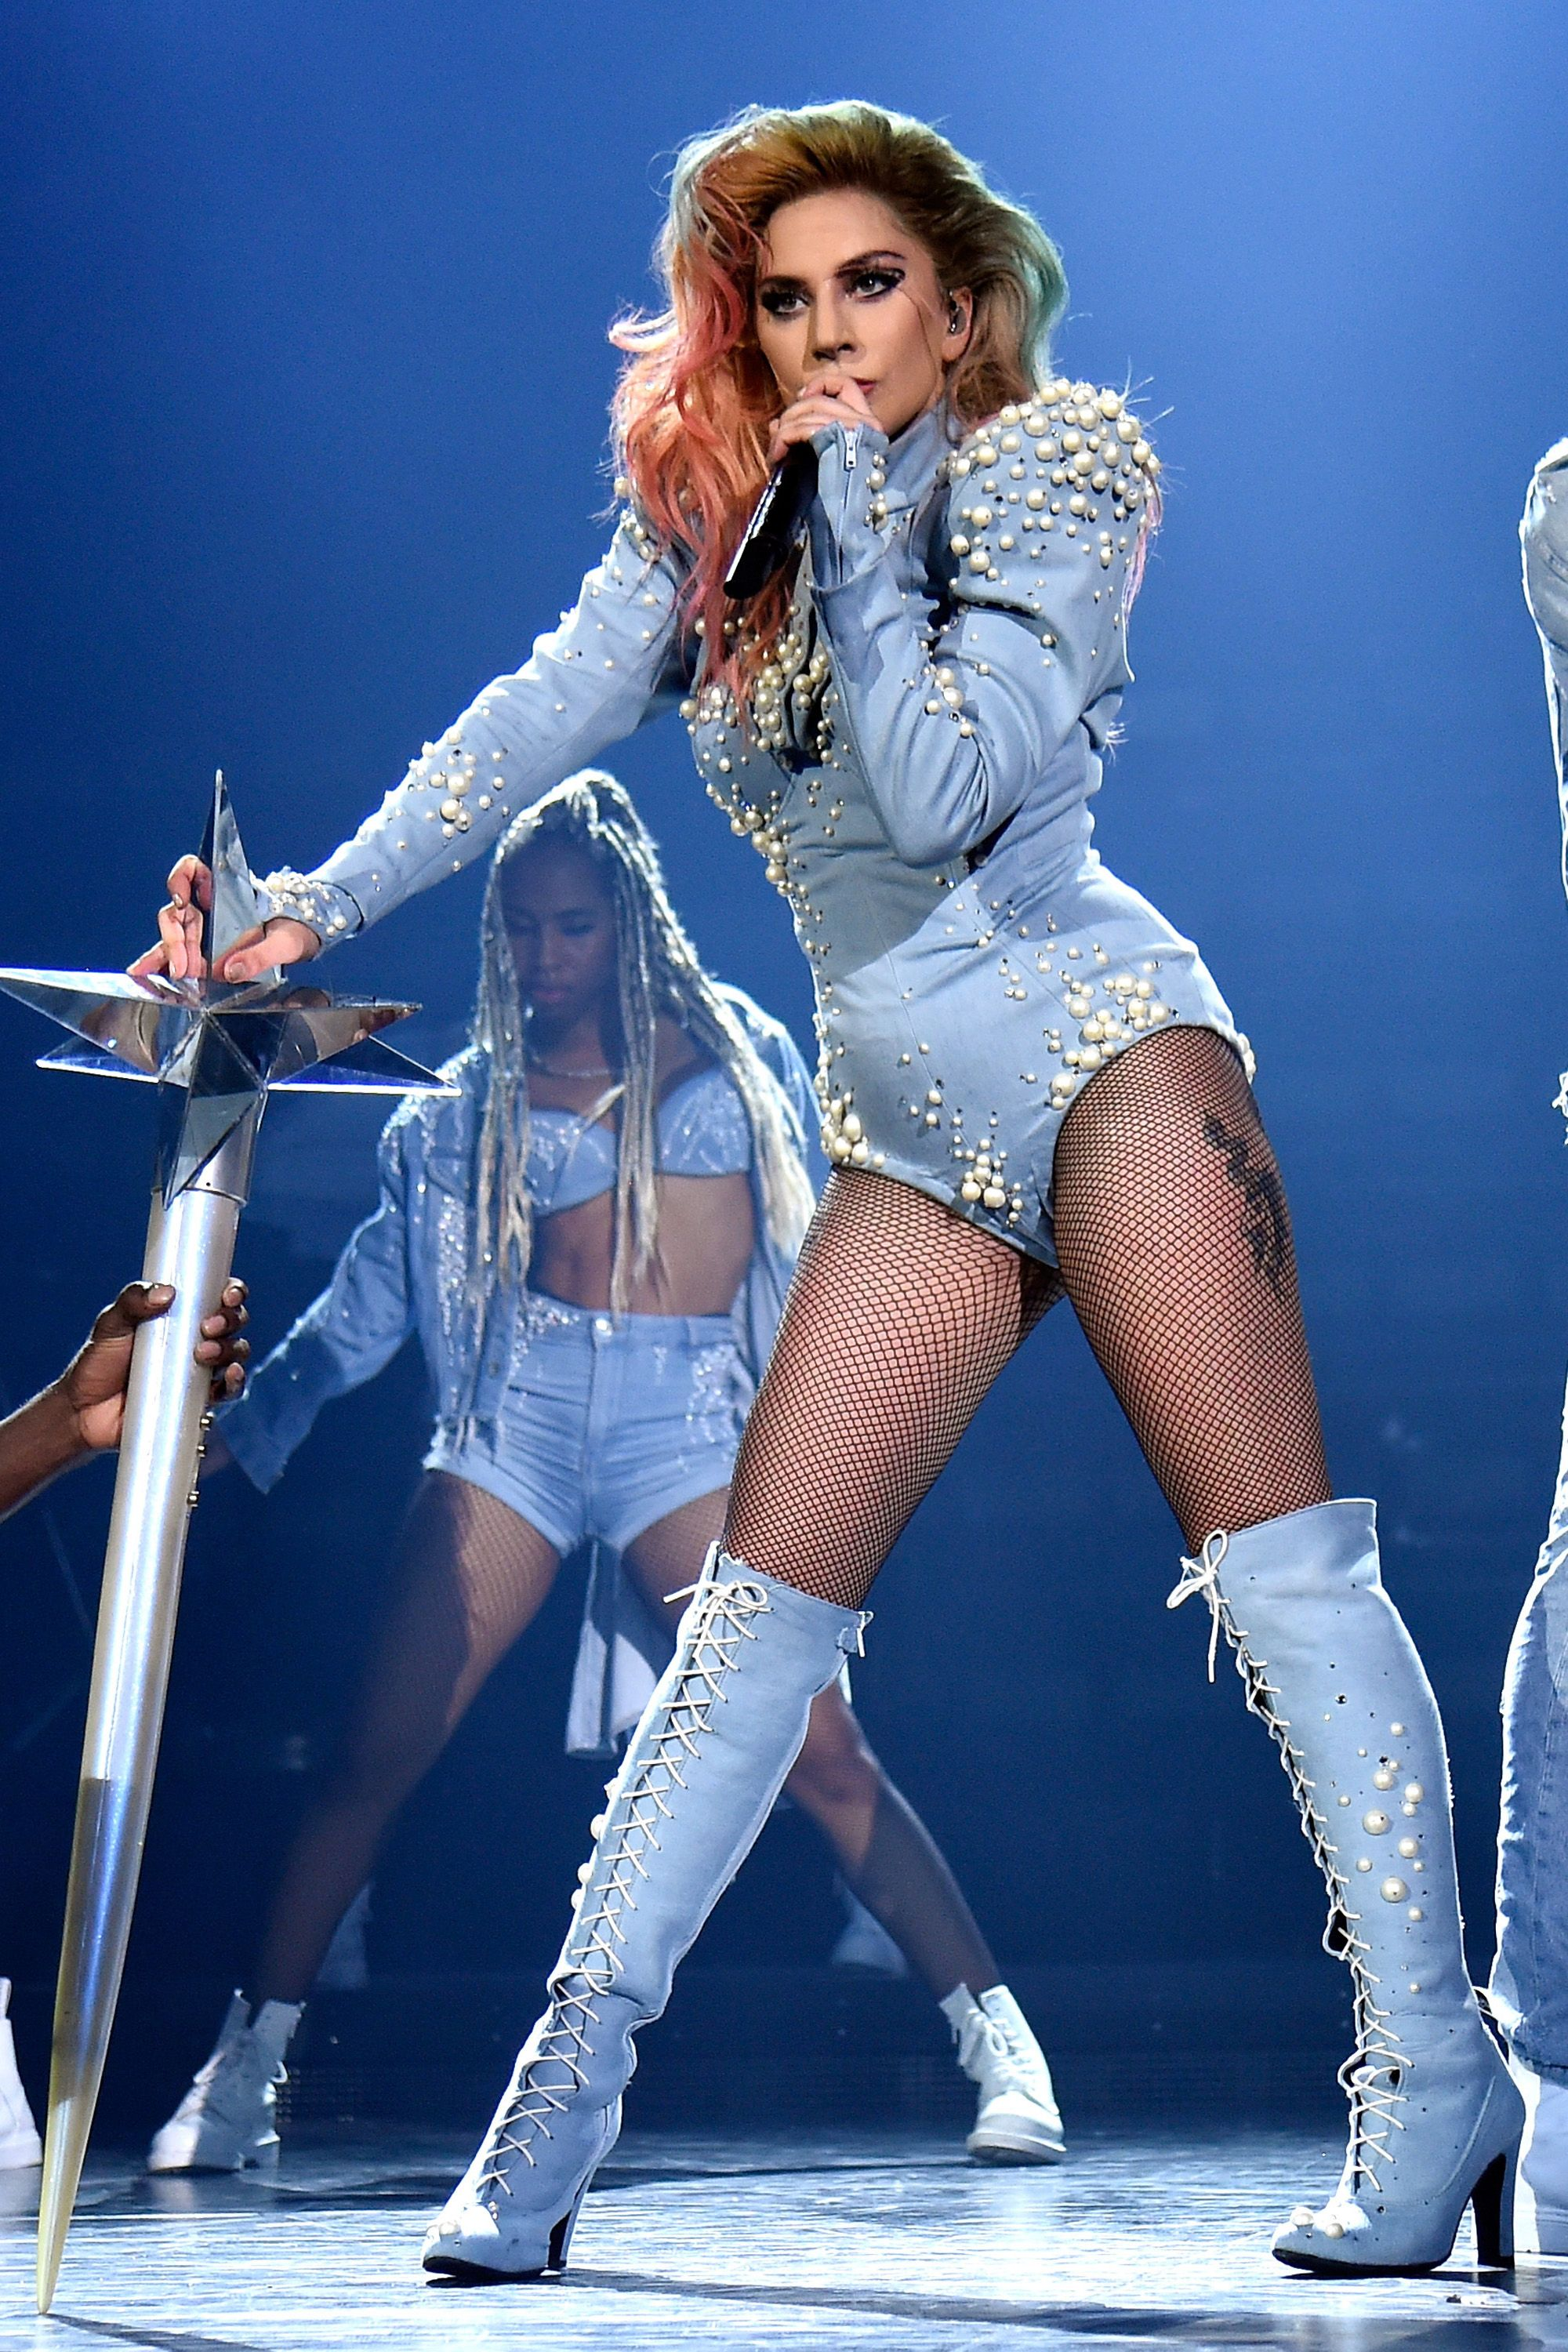 hbz-lady-gaga-tour-gettyimages-828995520